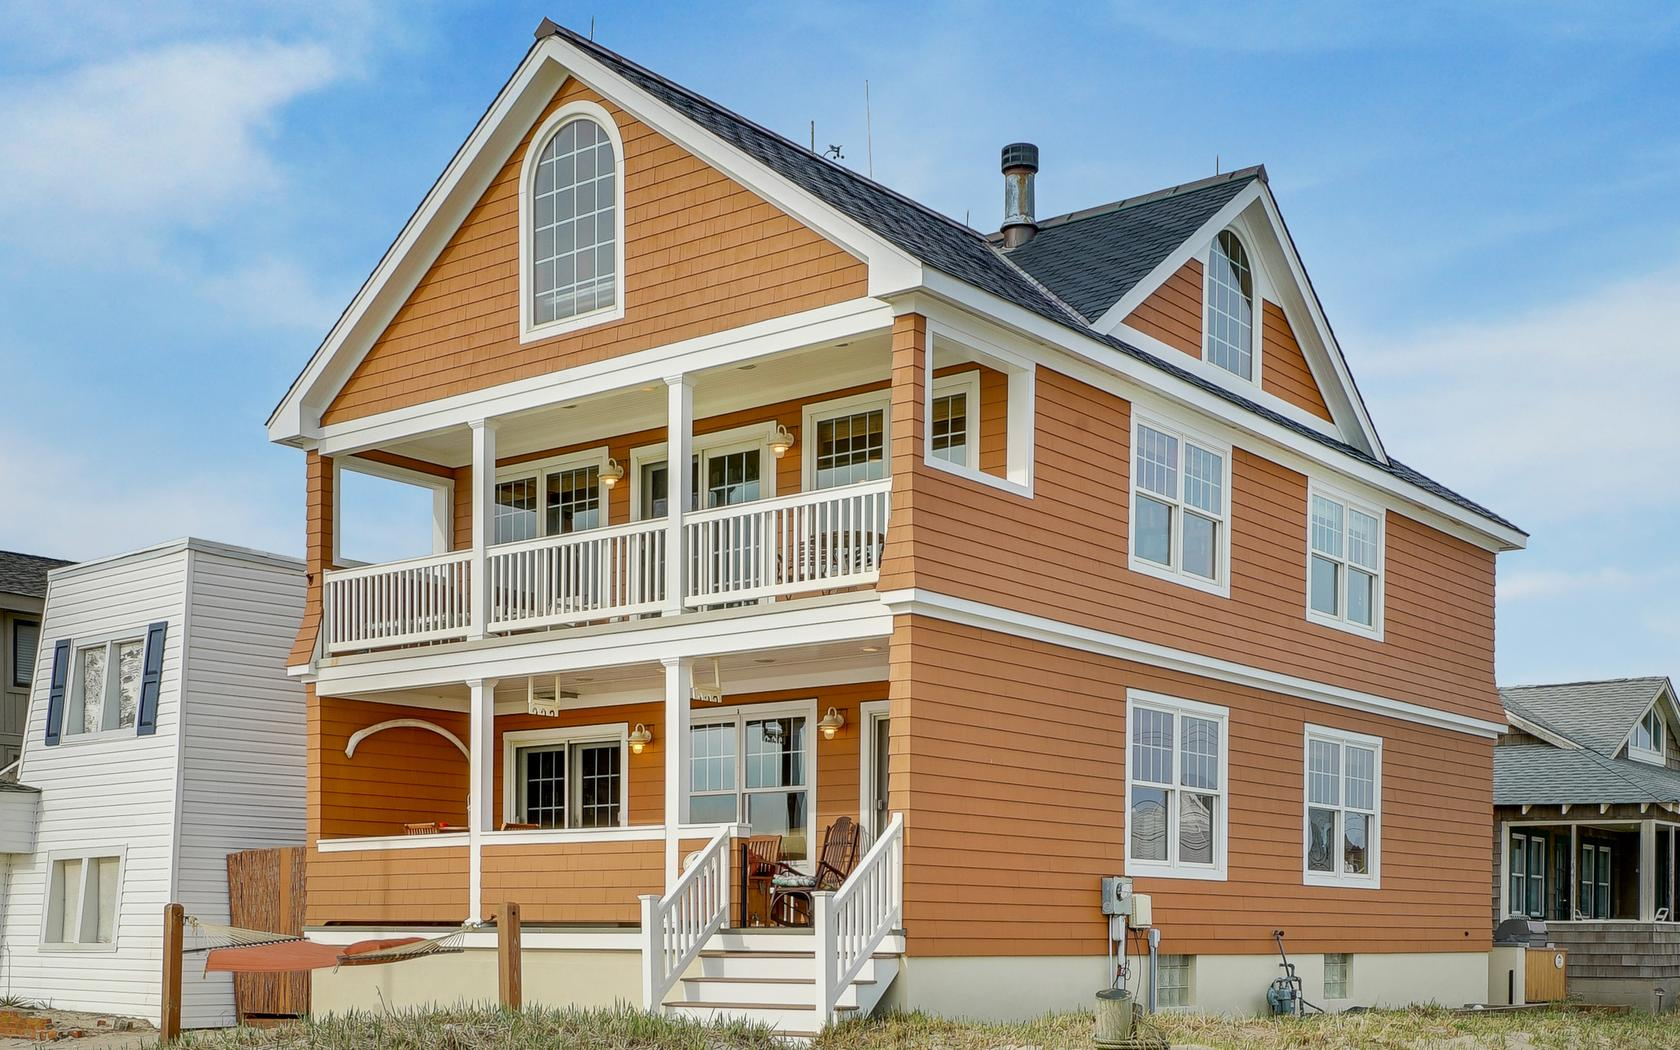 Single Family Home for Sale at Custom Built Beachfront Home 145 Beachfront Manasquan, New Jersey, 08736 United States